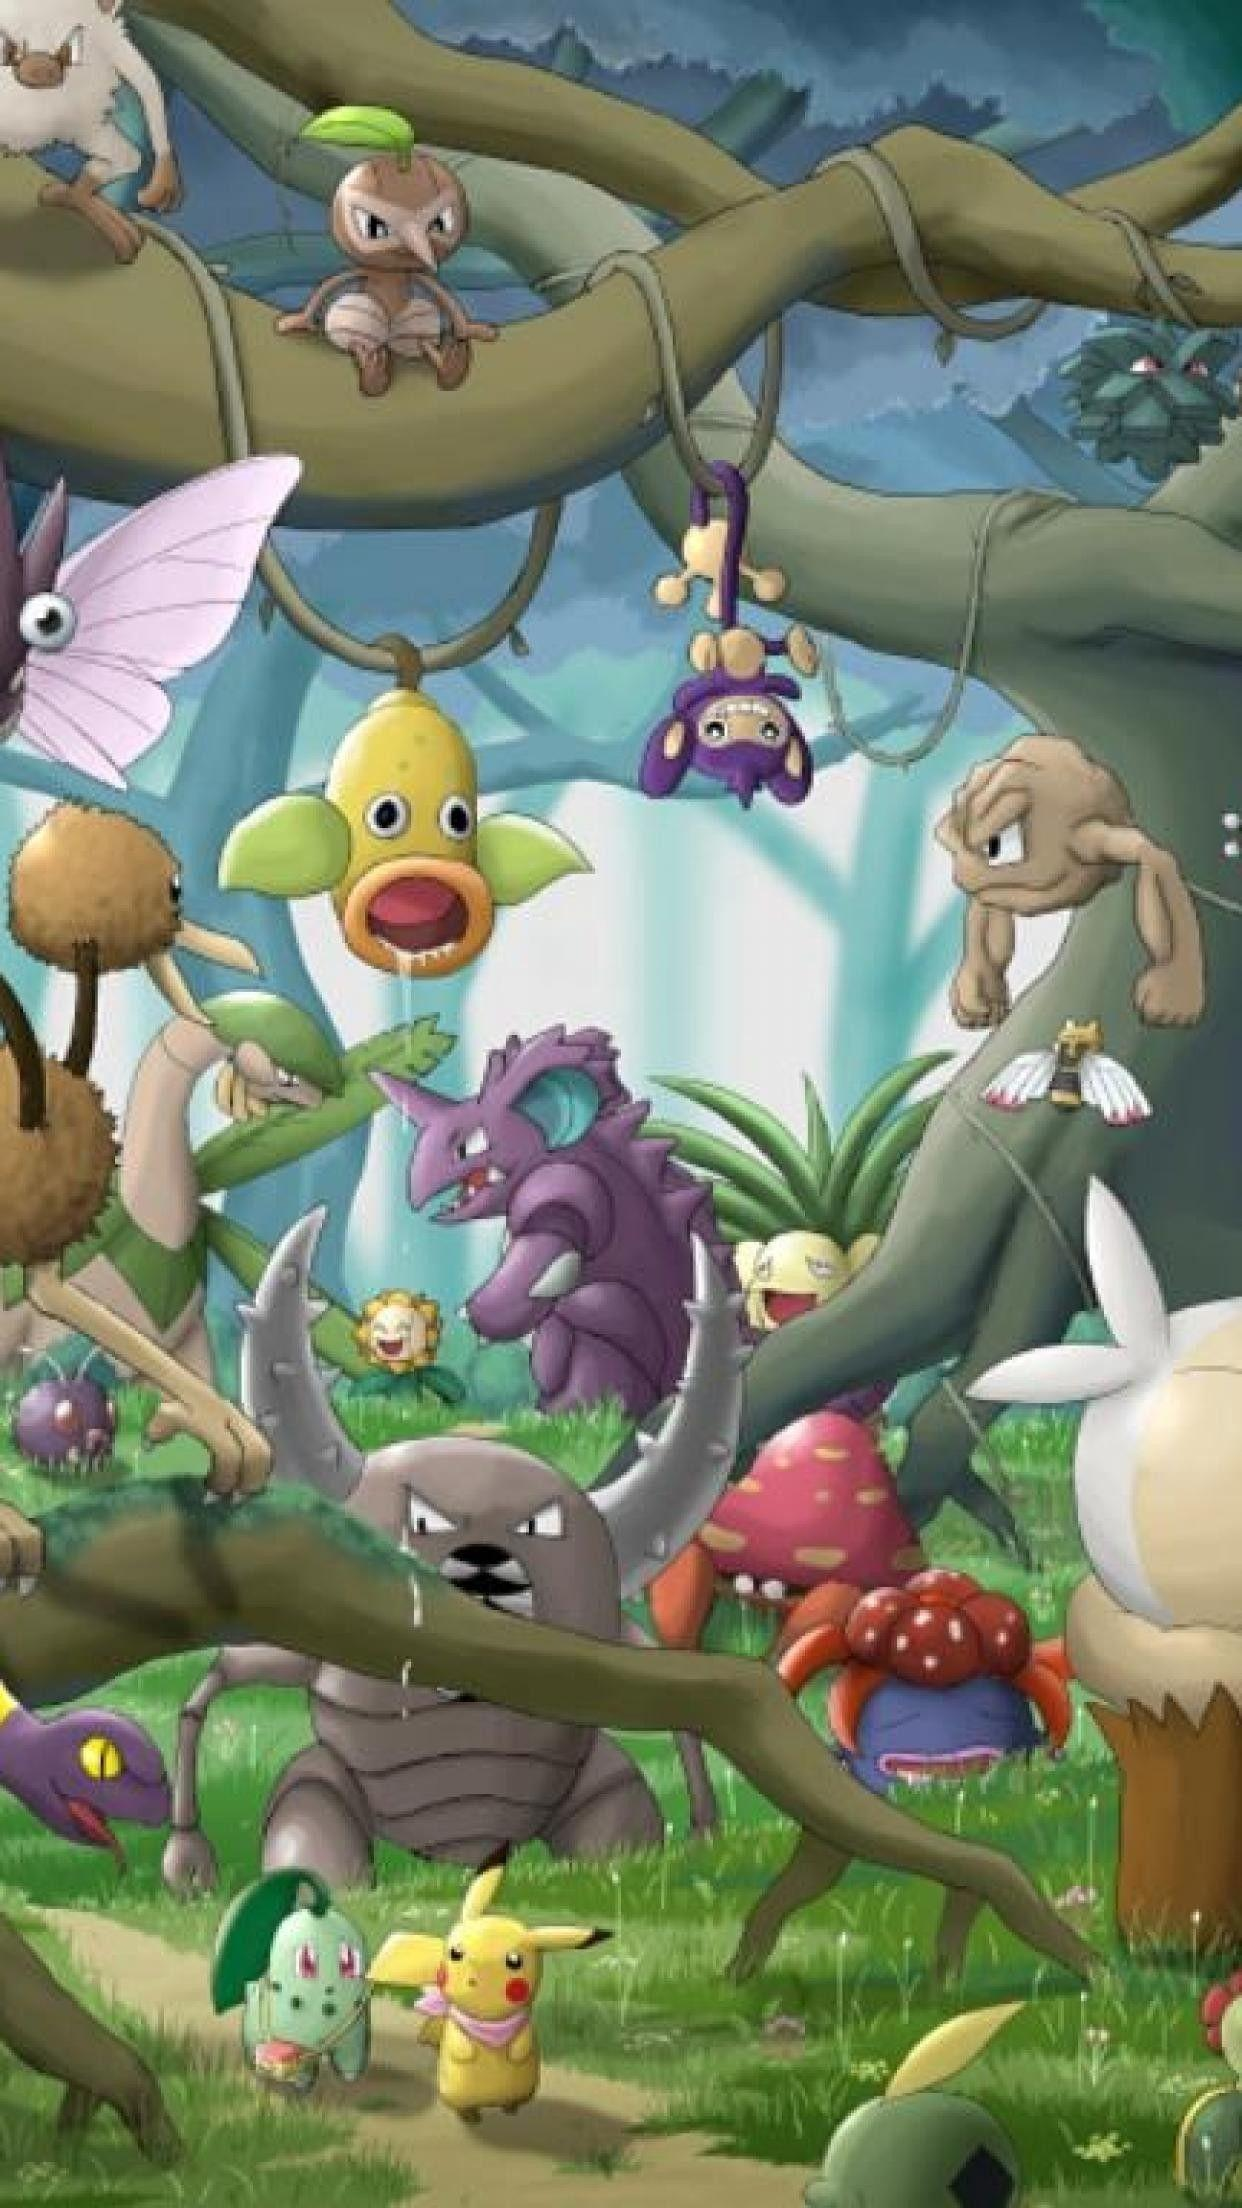 Pokemon Super Mystery Dungeon Wallpaper (56+ images)